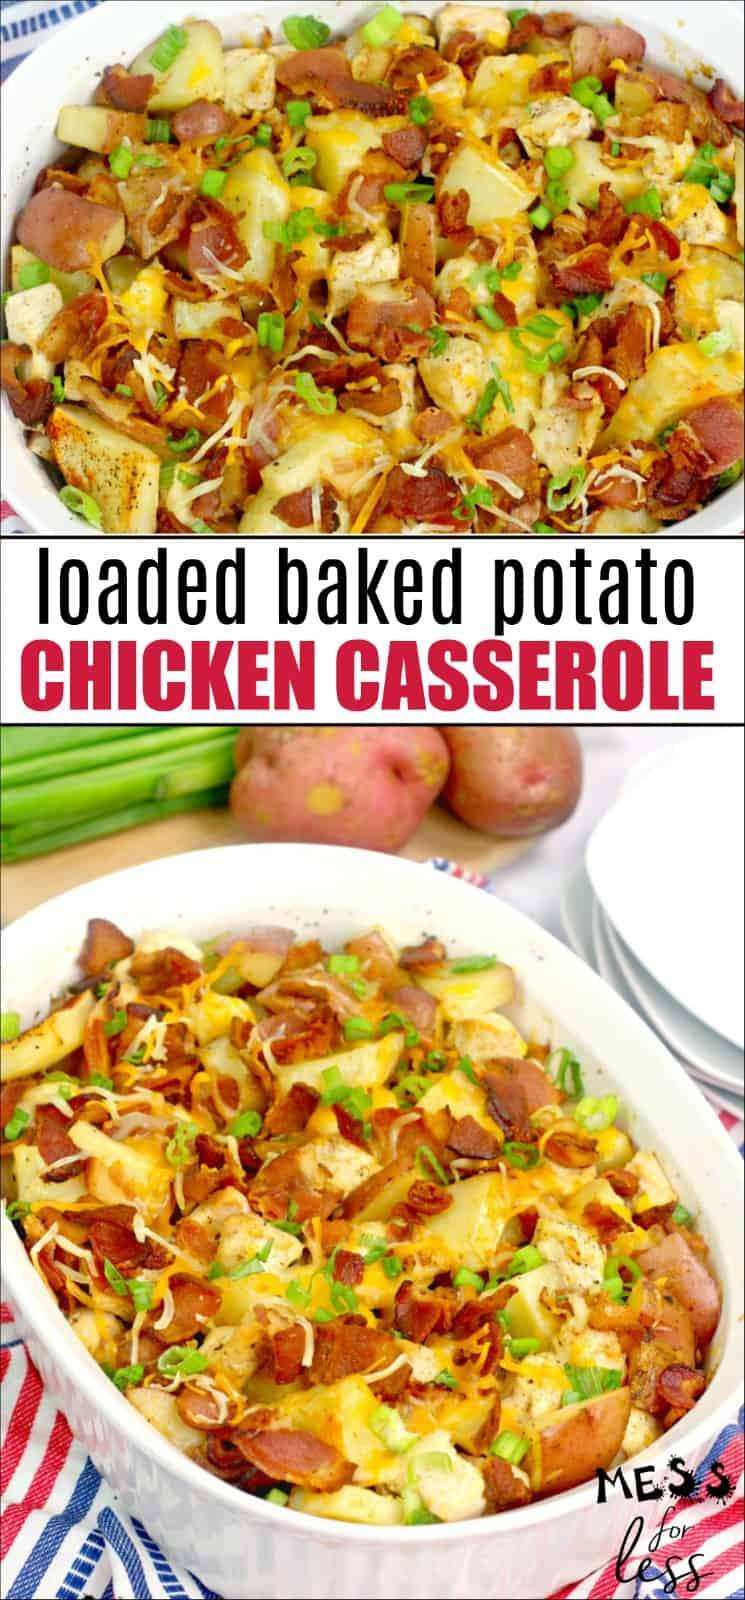 This chicken and potato casserole will become a family favorite. If you love loaded baked potatoes, you must try this. Cheese, bacon, potatoes - yum! #casserole #casserolerecipe #loadedbakedpotato #chickencasserole